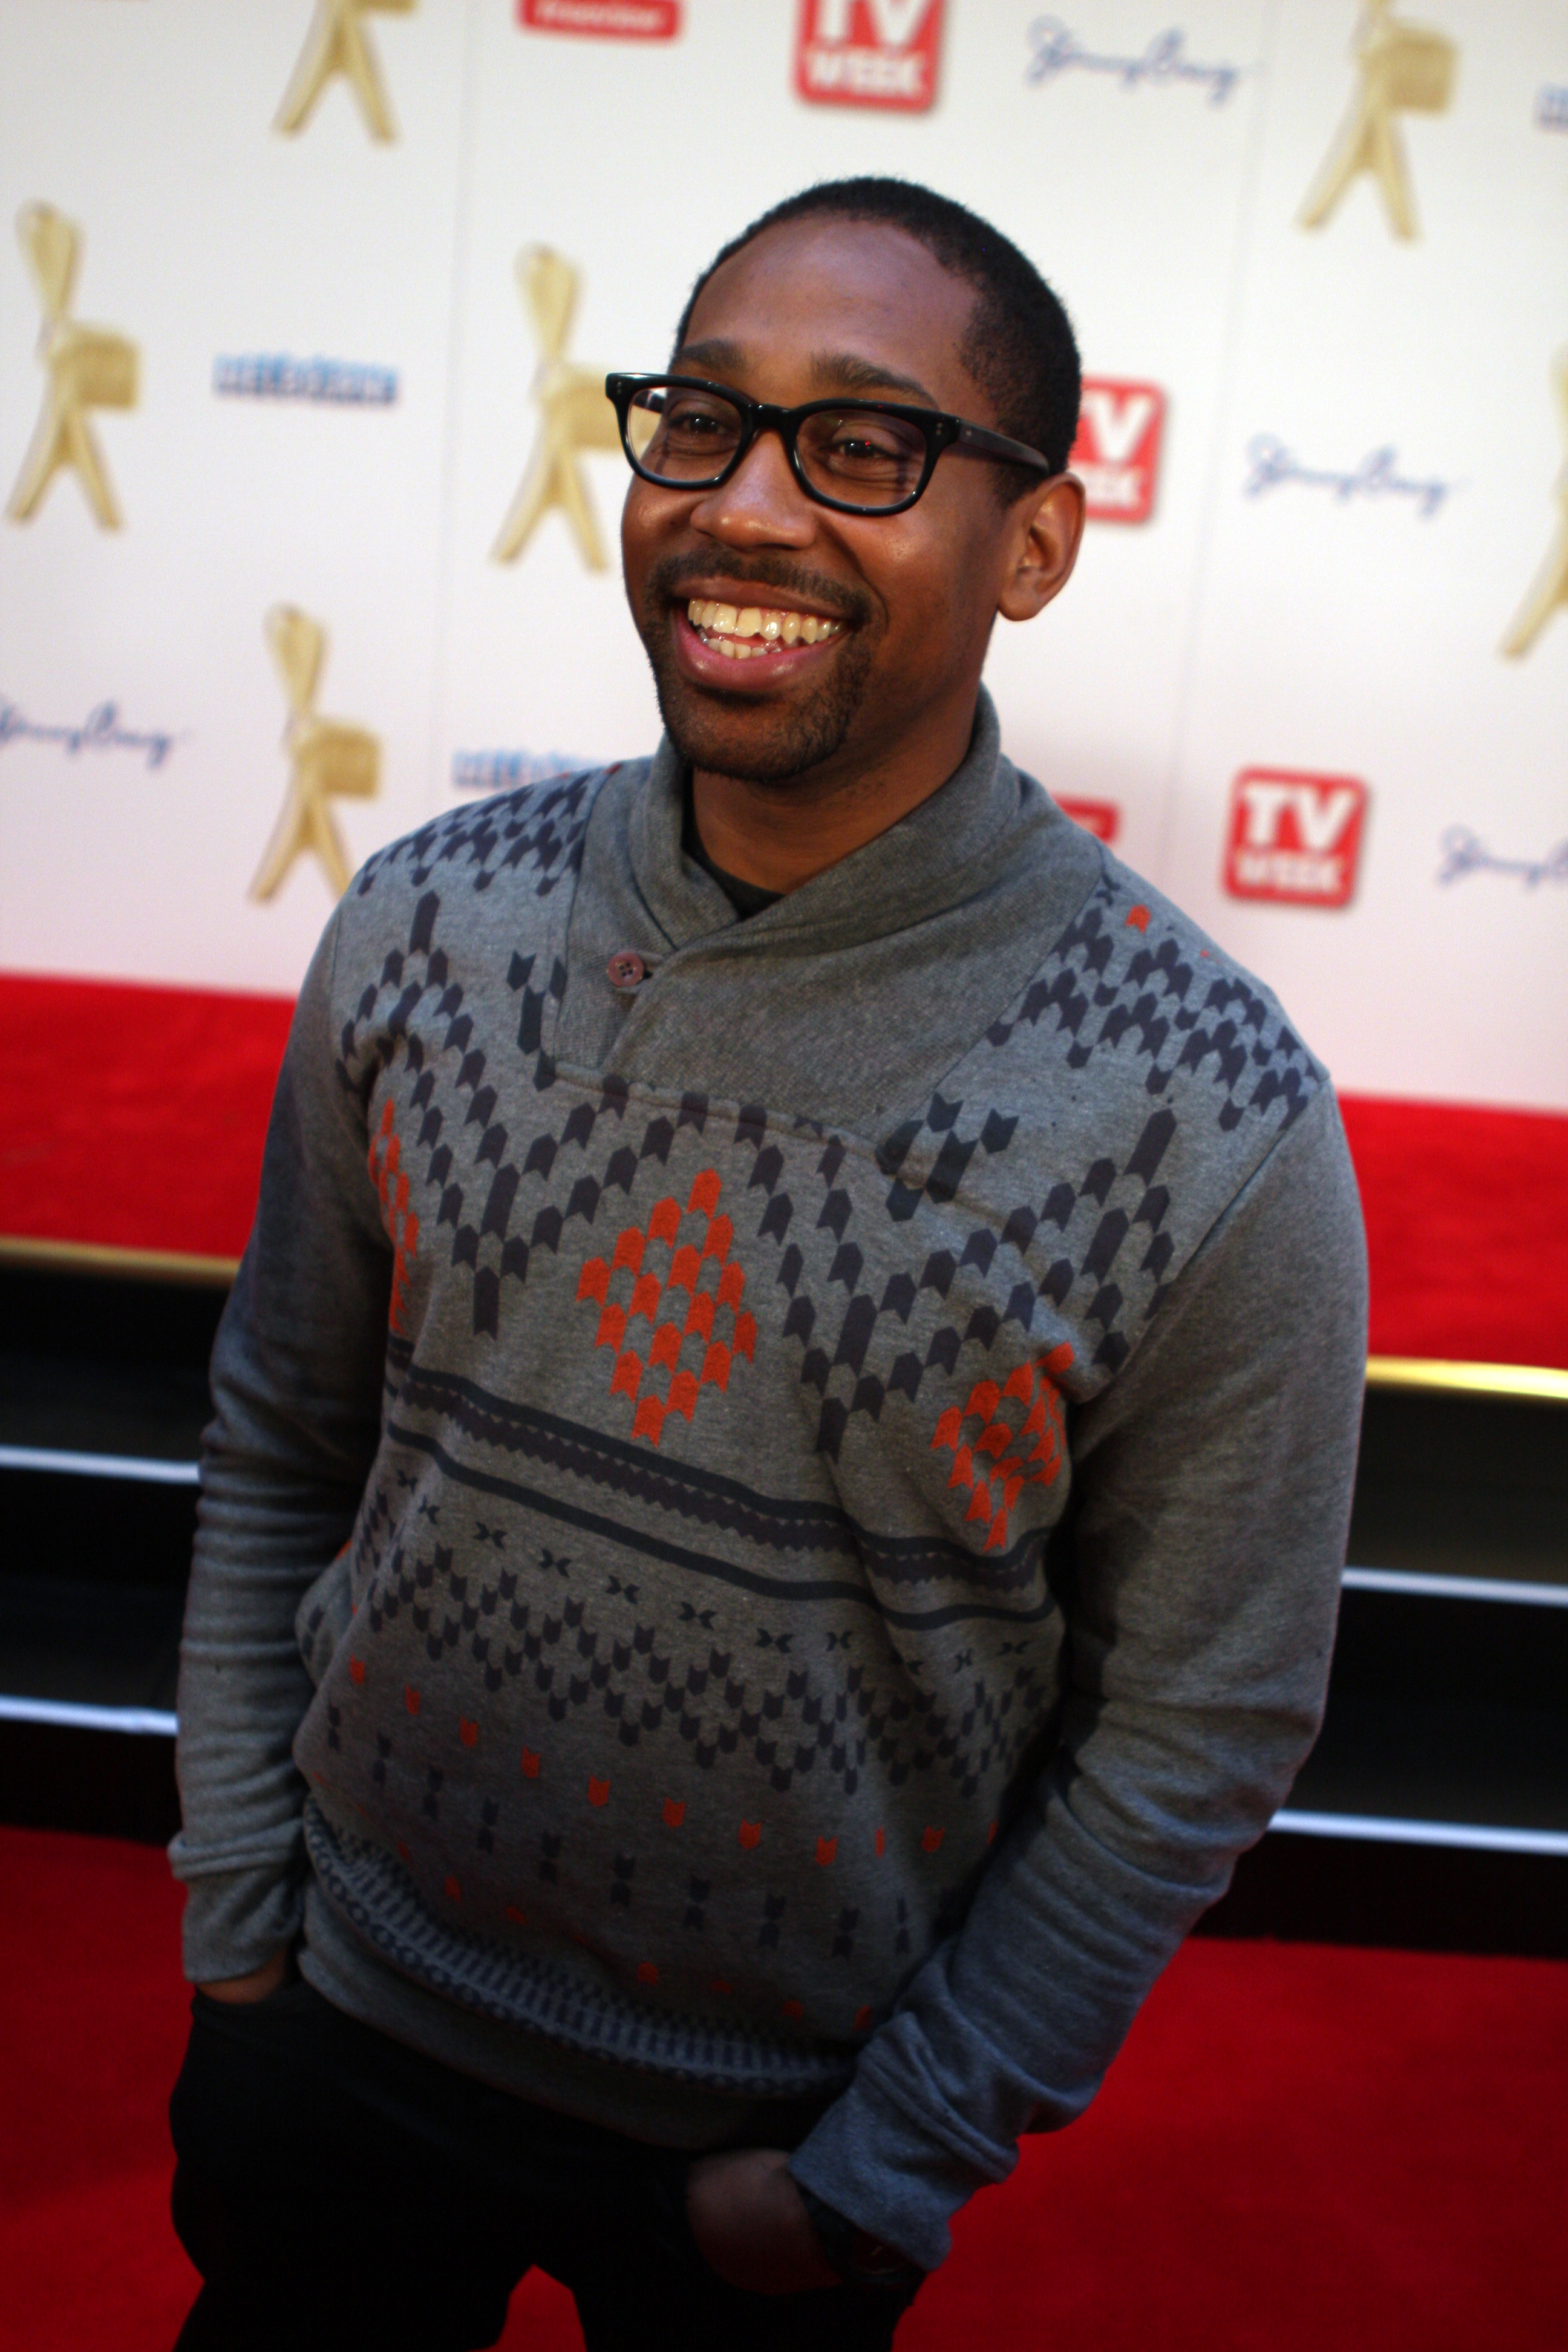 The 37-year old son of father (?) and mother(?) PJ Morton in 2018 photo. PJ Morton earned a  million dollar salary - leaving the net worth at 2 million in 2018